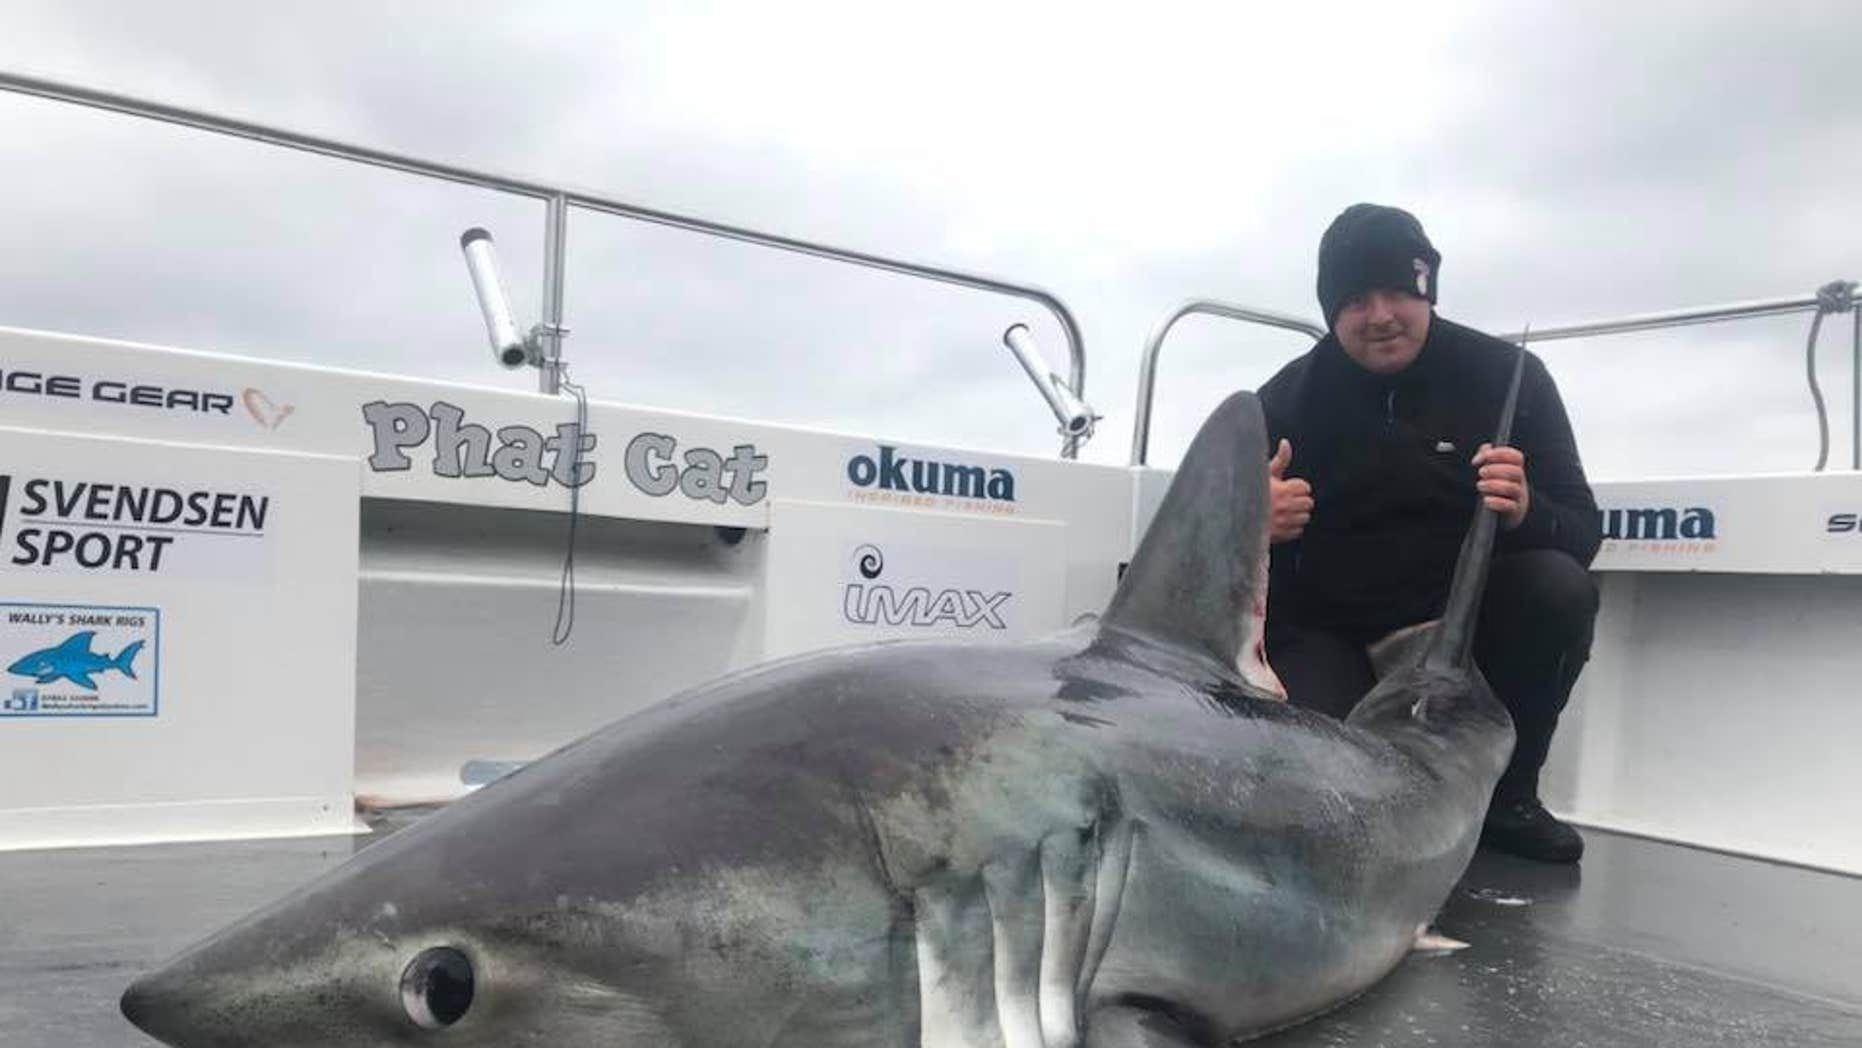 Tourist Matthew Burrett reeled in the 324-pound shark during a recent trip with Phatcat Charters off the coast of Wales.